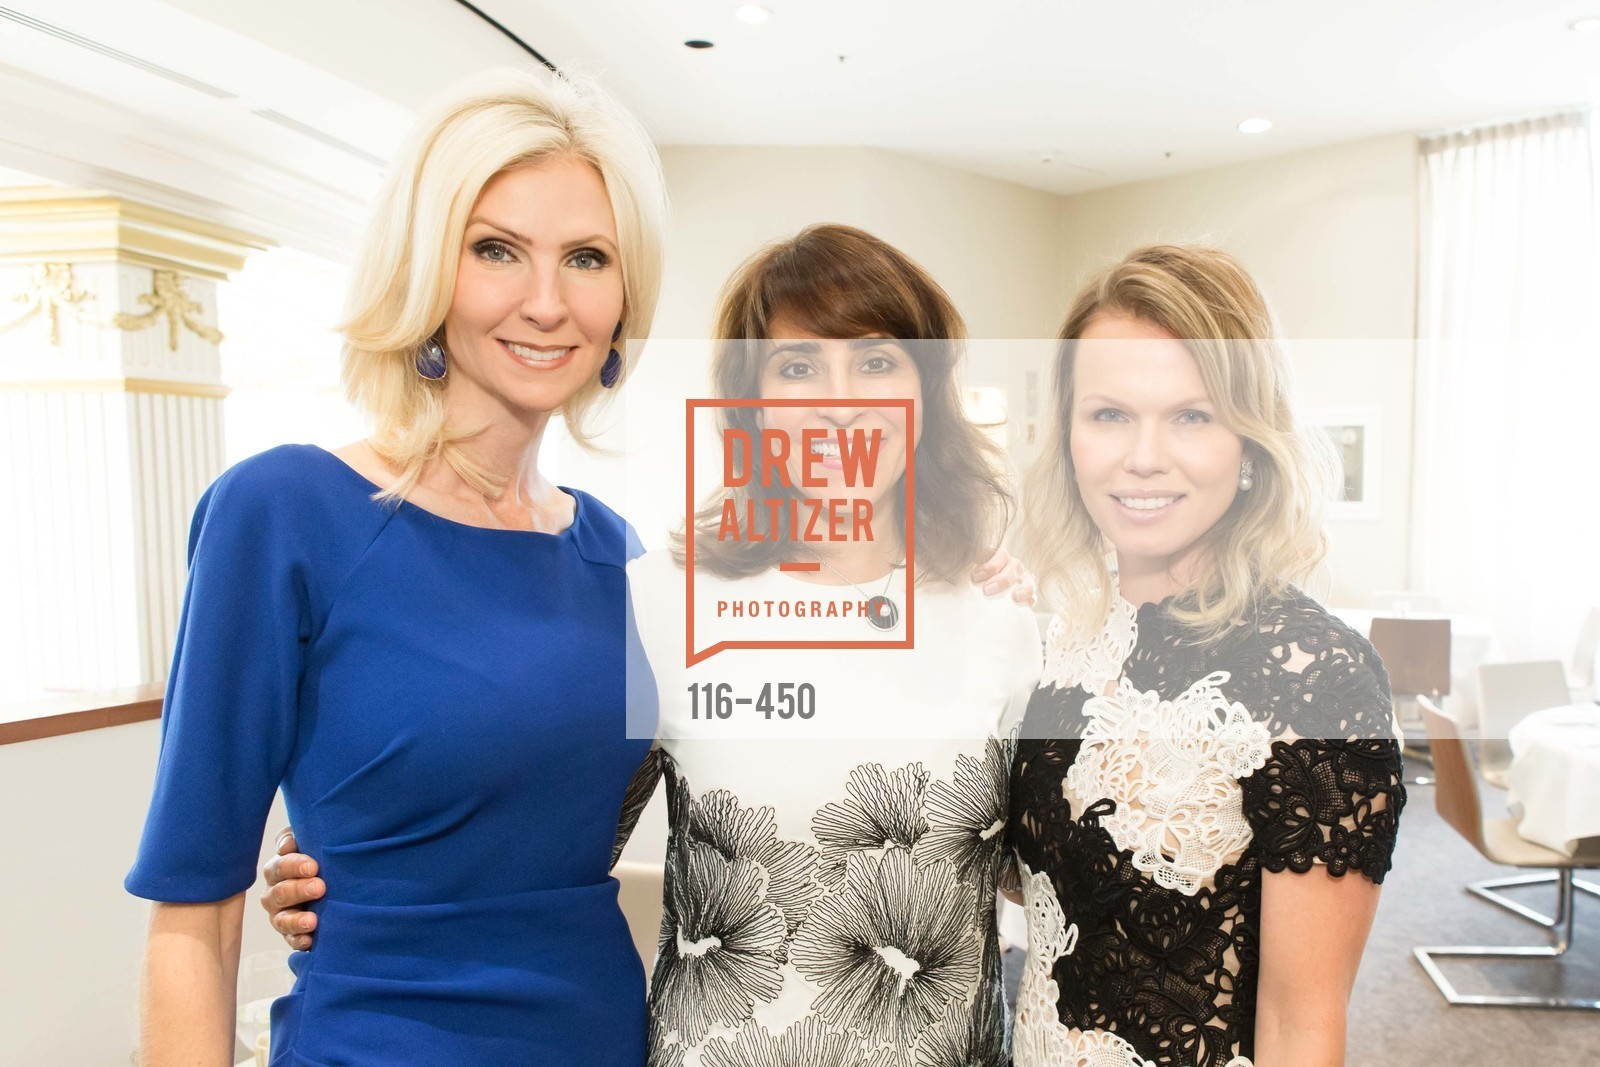 Lora Peterson, Katherine Simon, Claire Fluhr, Lela Rose Book Signing and Luncheon at Neiman Marcus, Neiman Marcus, November 5th, 2015,Drew Altizer, Drew Altizer Photography, full-service event agency, private events, San Francisco photographer, photographer California